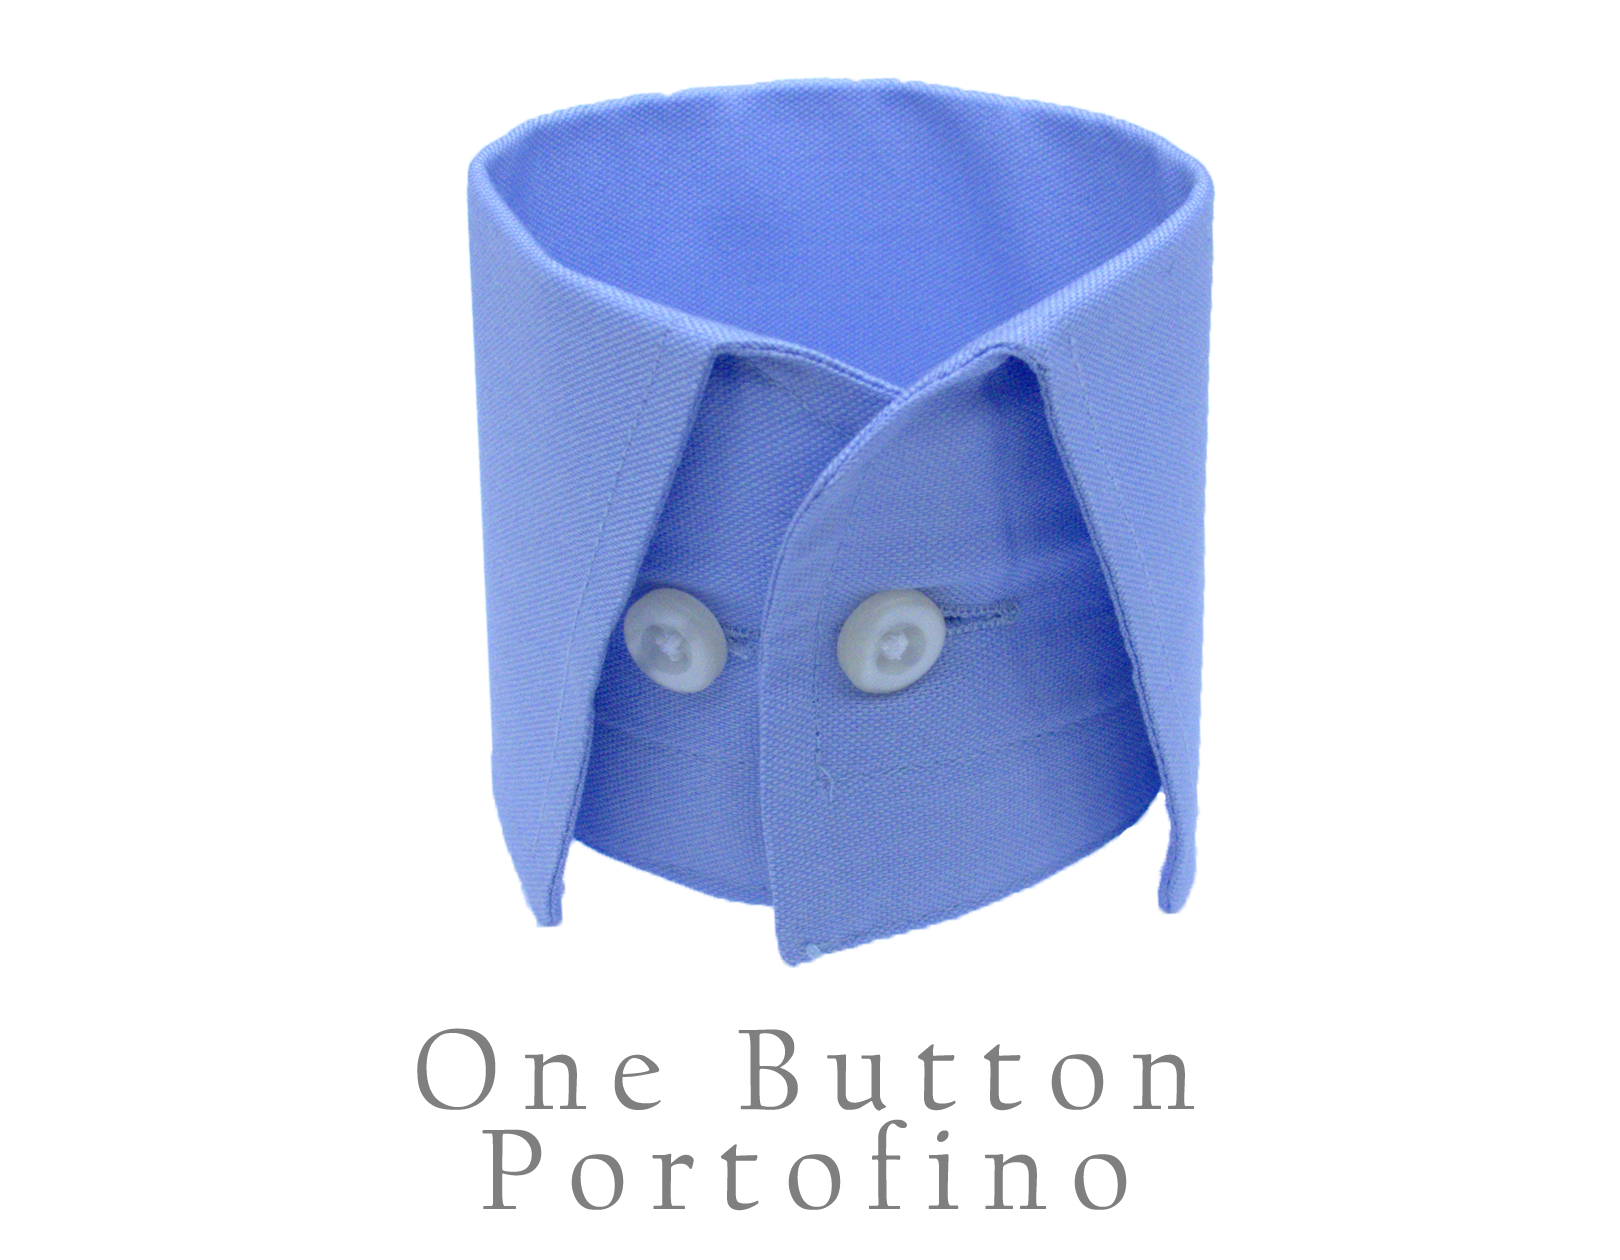 One Button Portofino.jpg